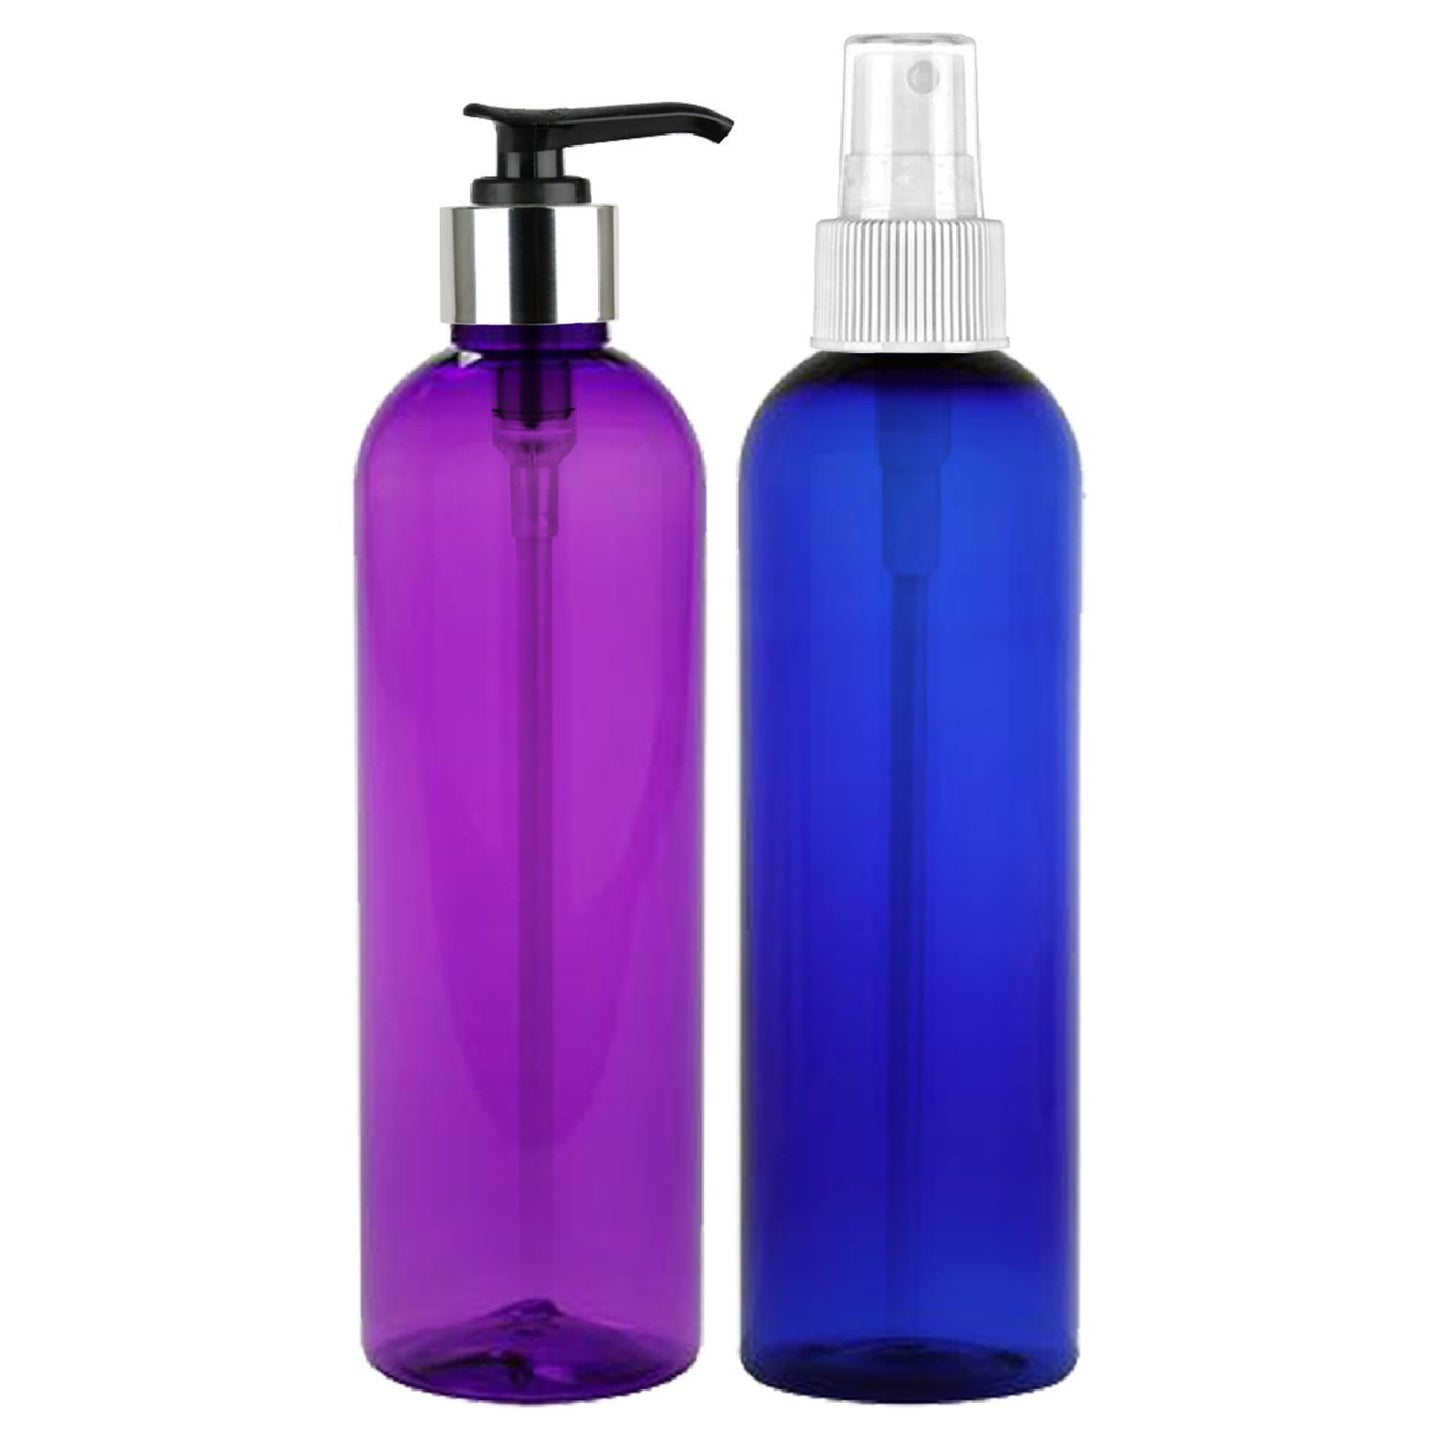 MoYo Natural Labs Elegant Silver Tone Pump Lotion Bottle Purple and Fine Mist Spray Bottle Blue 8 Oz Pack of 2